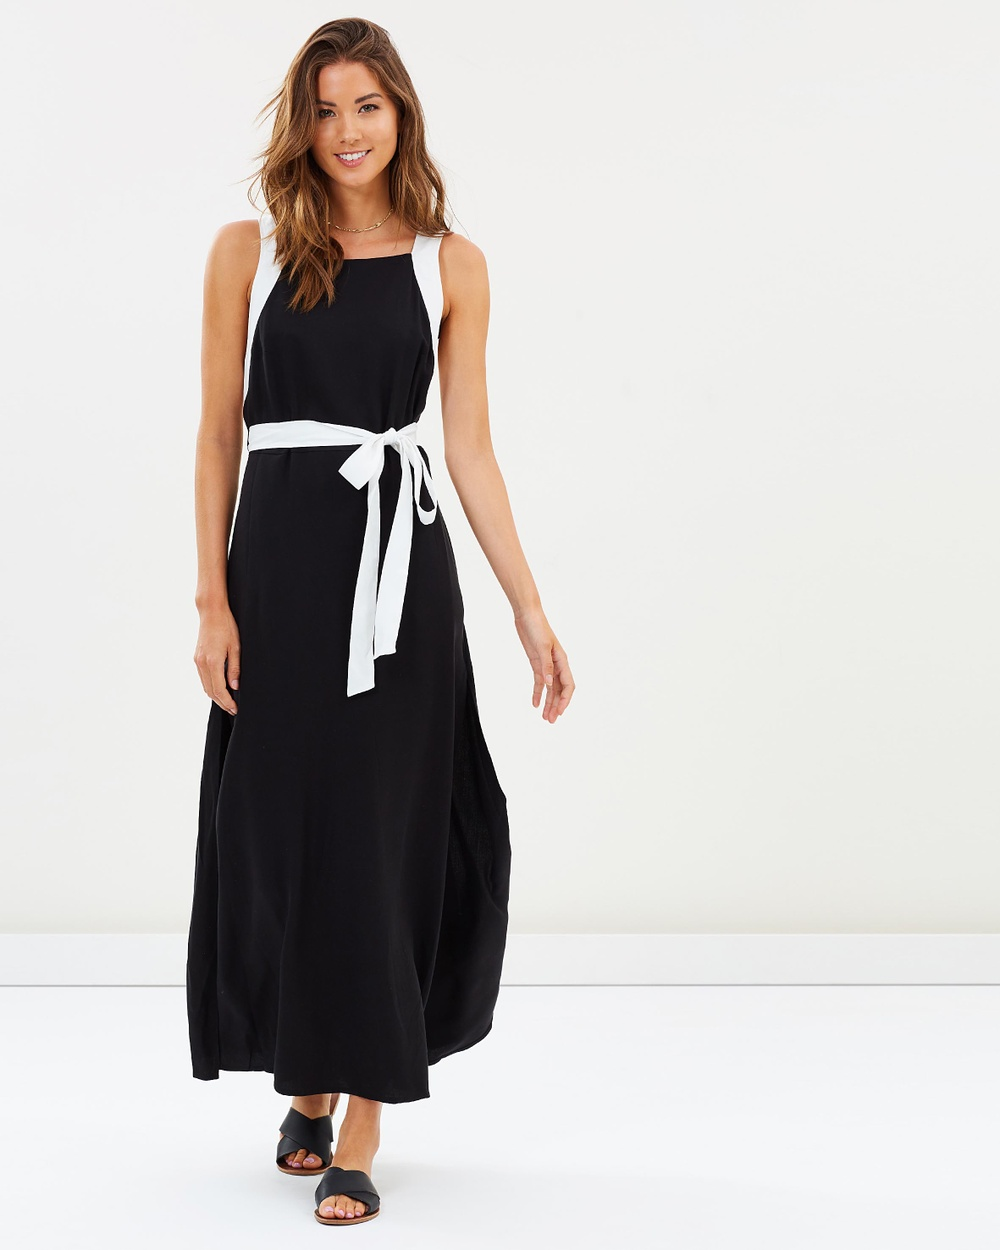 JETS Maxi Wrap Dress Dresses Black Maxi Wrap Dress